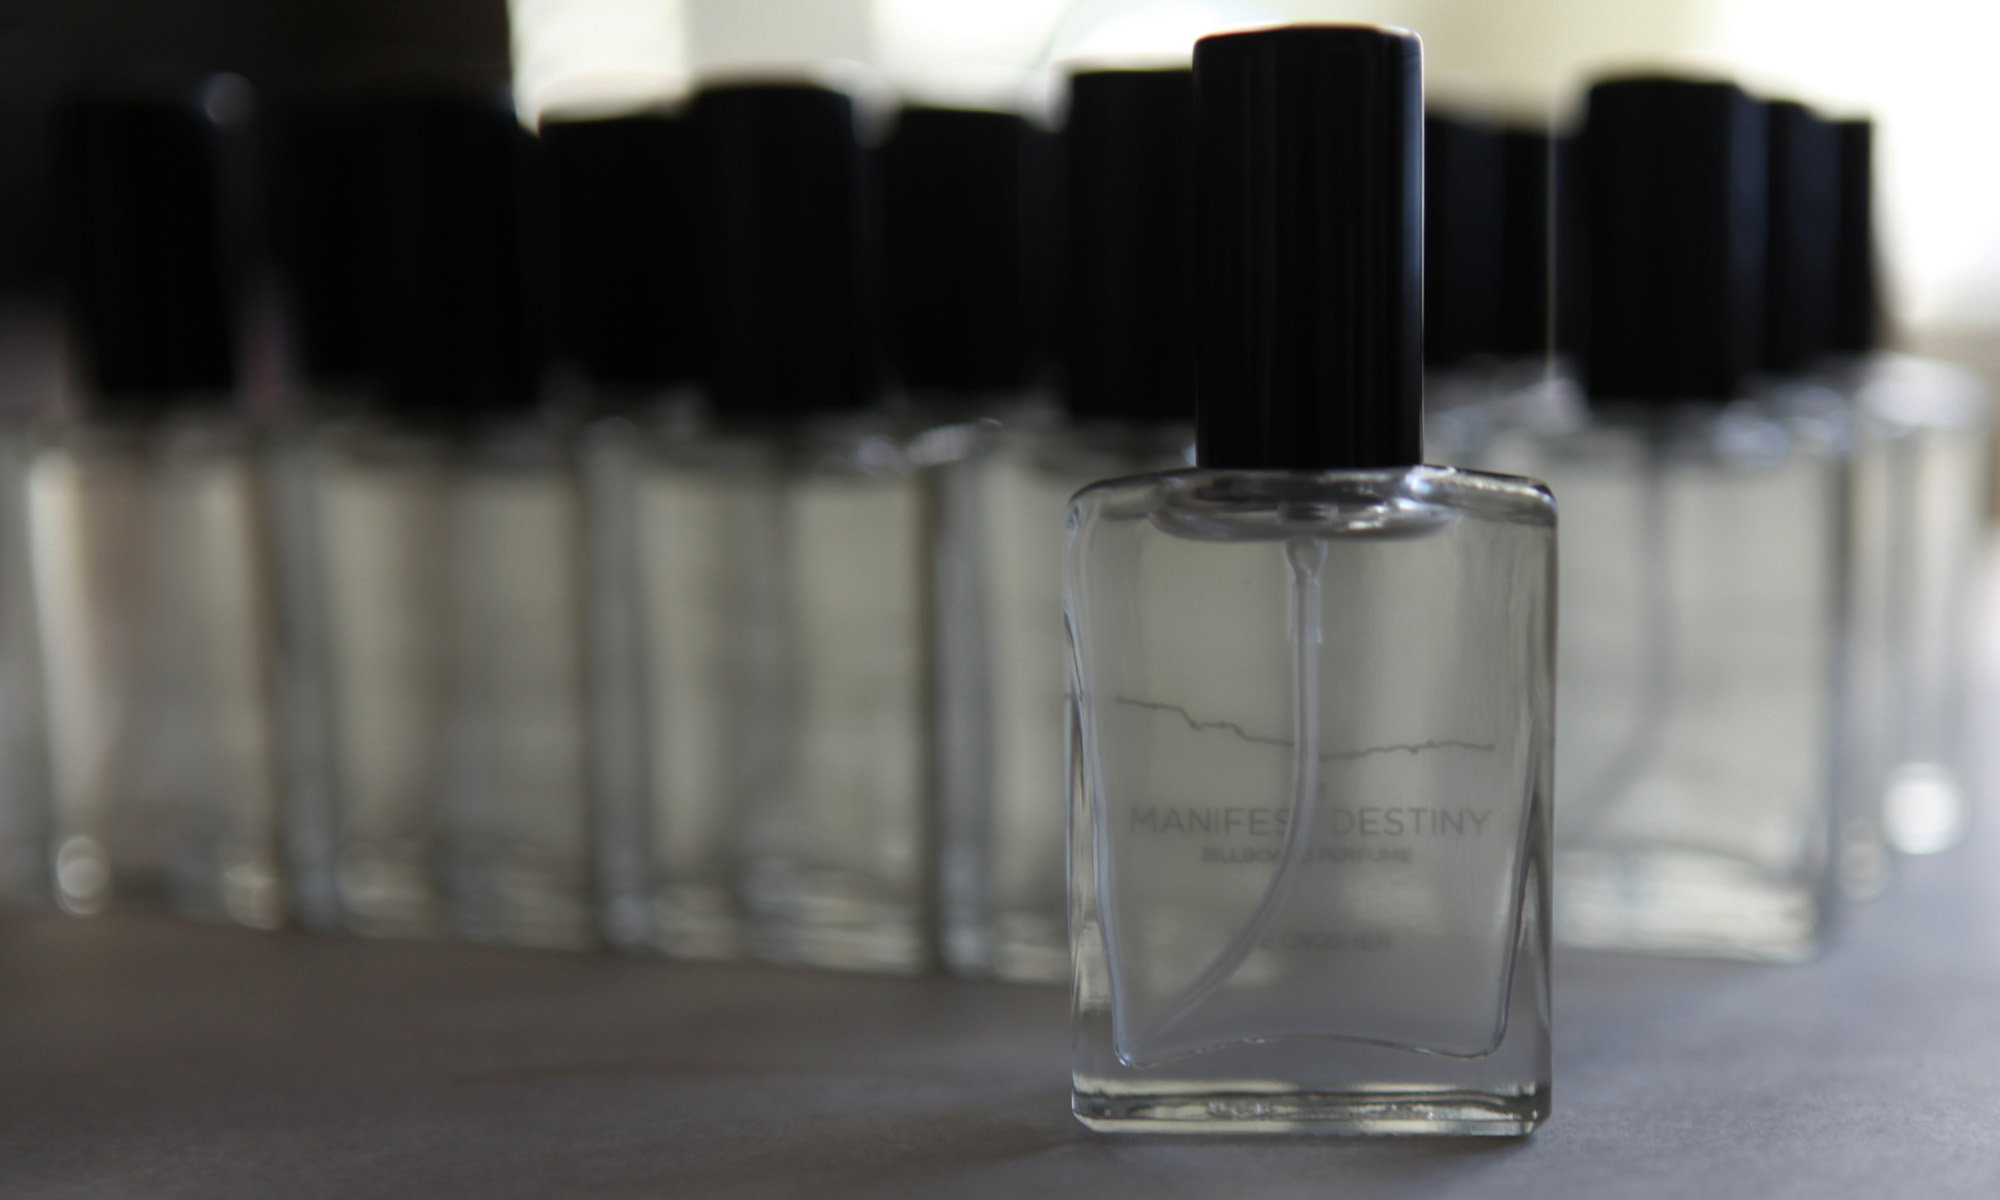 The Manifest Destiny Perfume